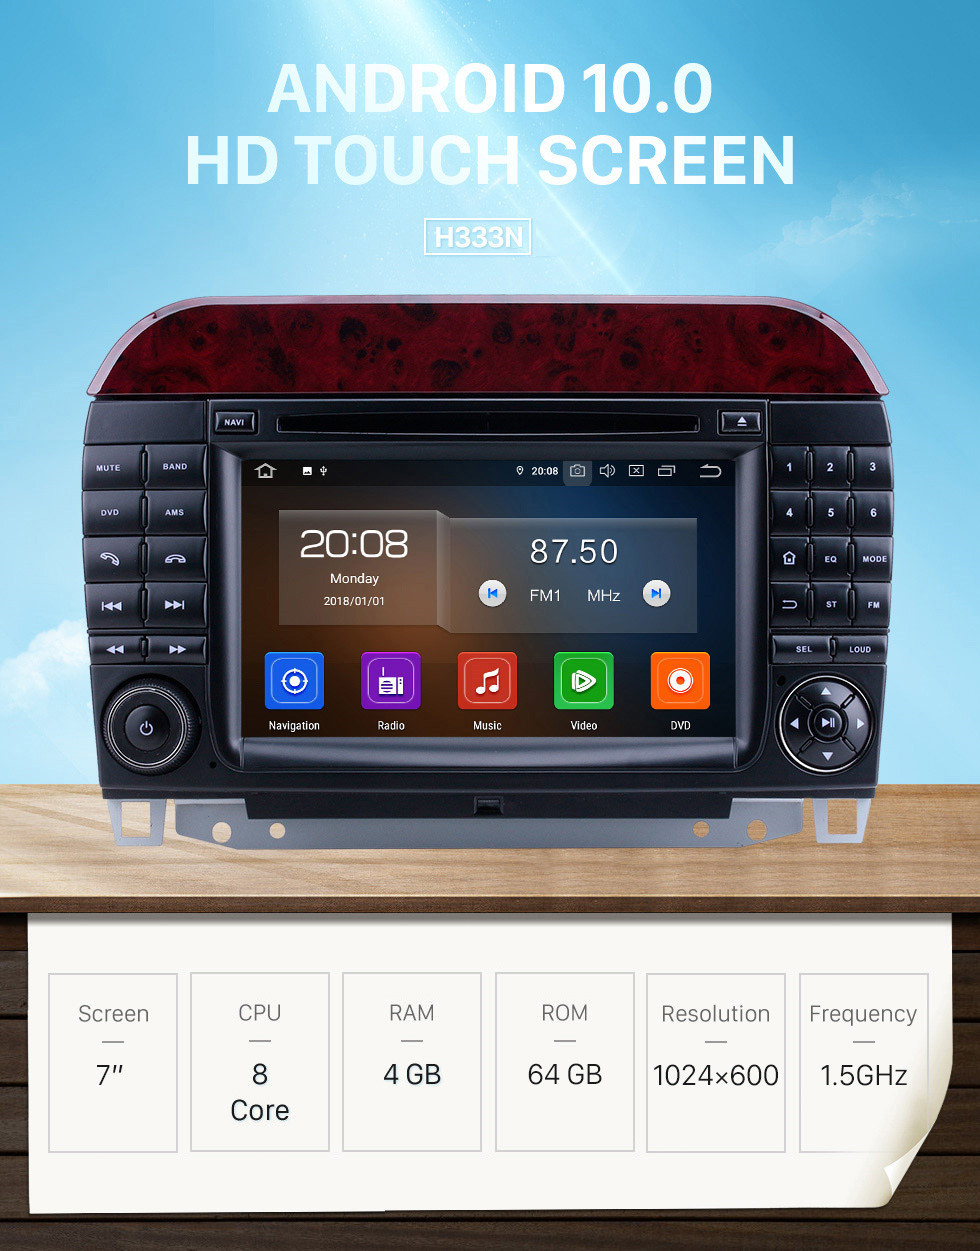 Seicane 7 inch Android 10.0 HD Touchscreen Radio for 1998-2005 Mercedes Benz S Class W220/S280/S320/S320 CDI/S400 CDI/S350/S430/S500/S600/S55 AMG/S63 AMG/S65 AMG with Bluetooth GPS Navigation Carplay support 1080P